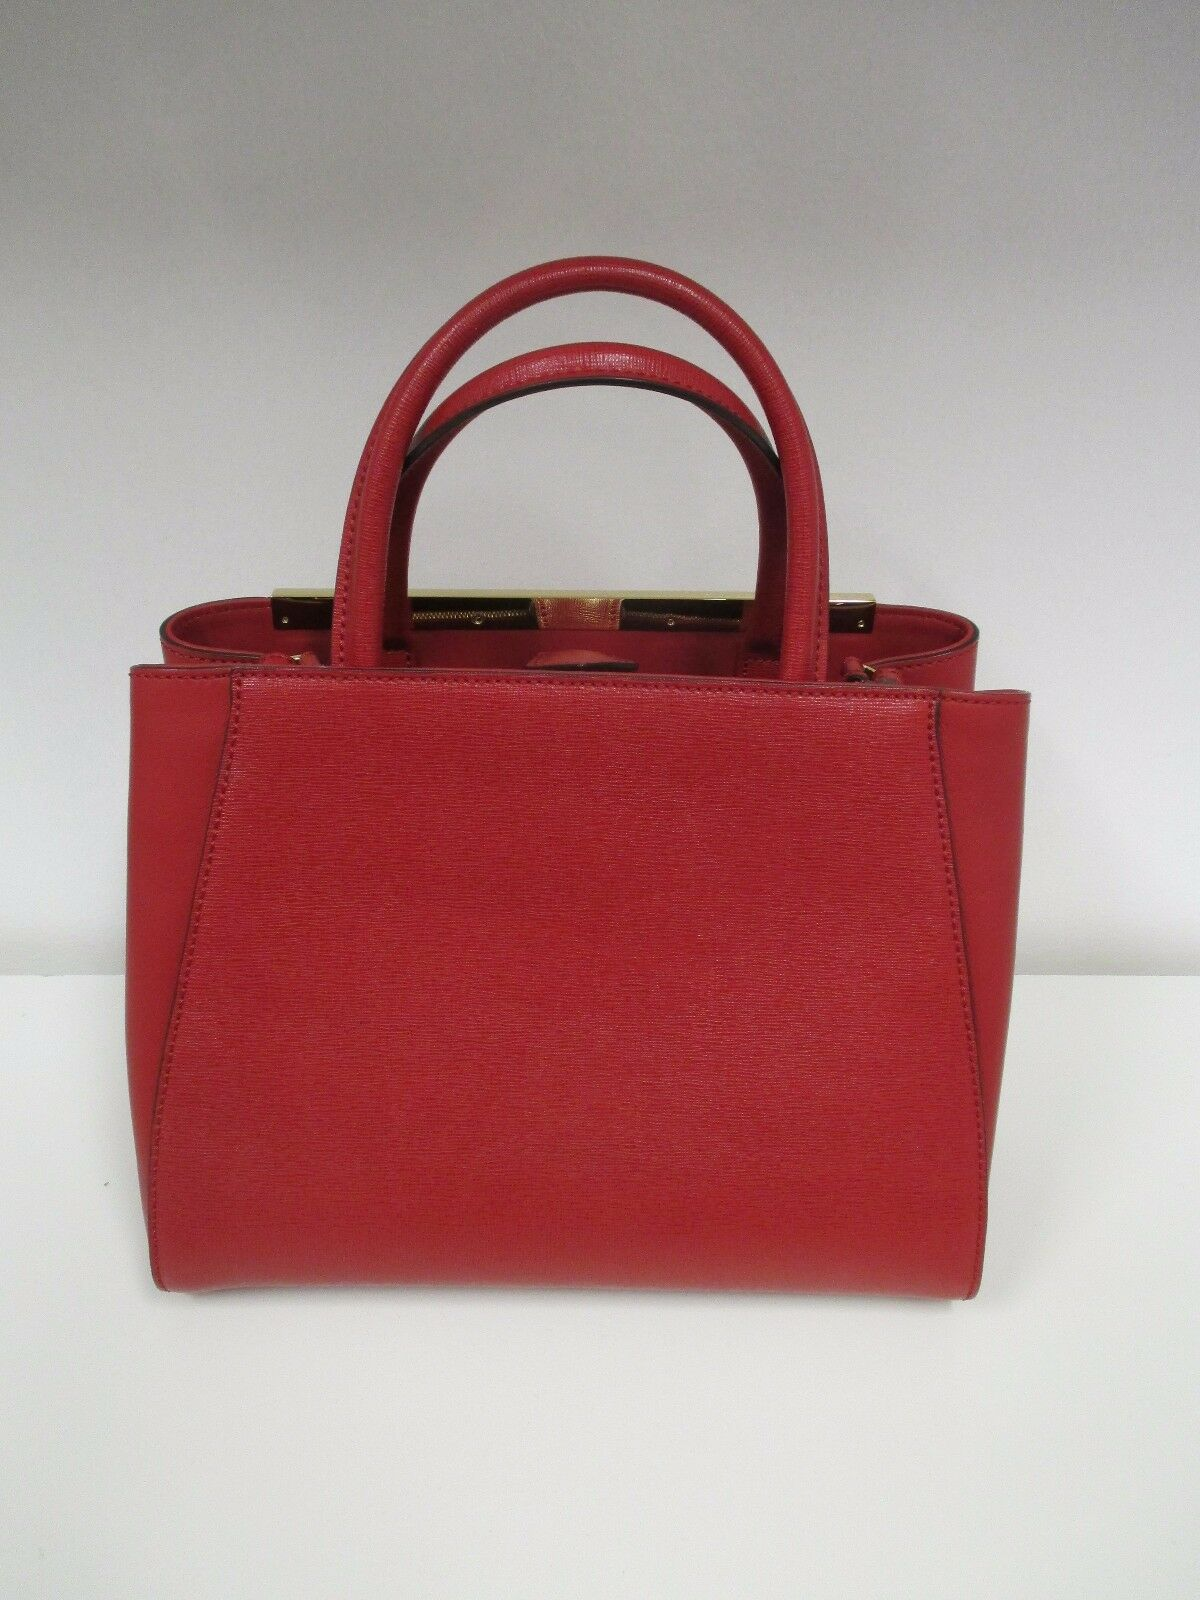 bf8fa5dbbb8f Fendi Red Petite 2jours Elite Tote Bag - With Tags - for sale online ...